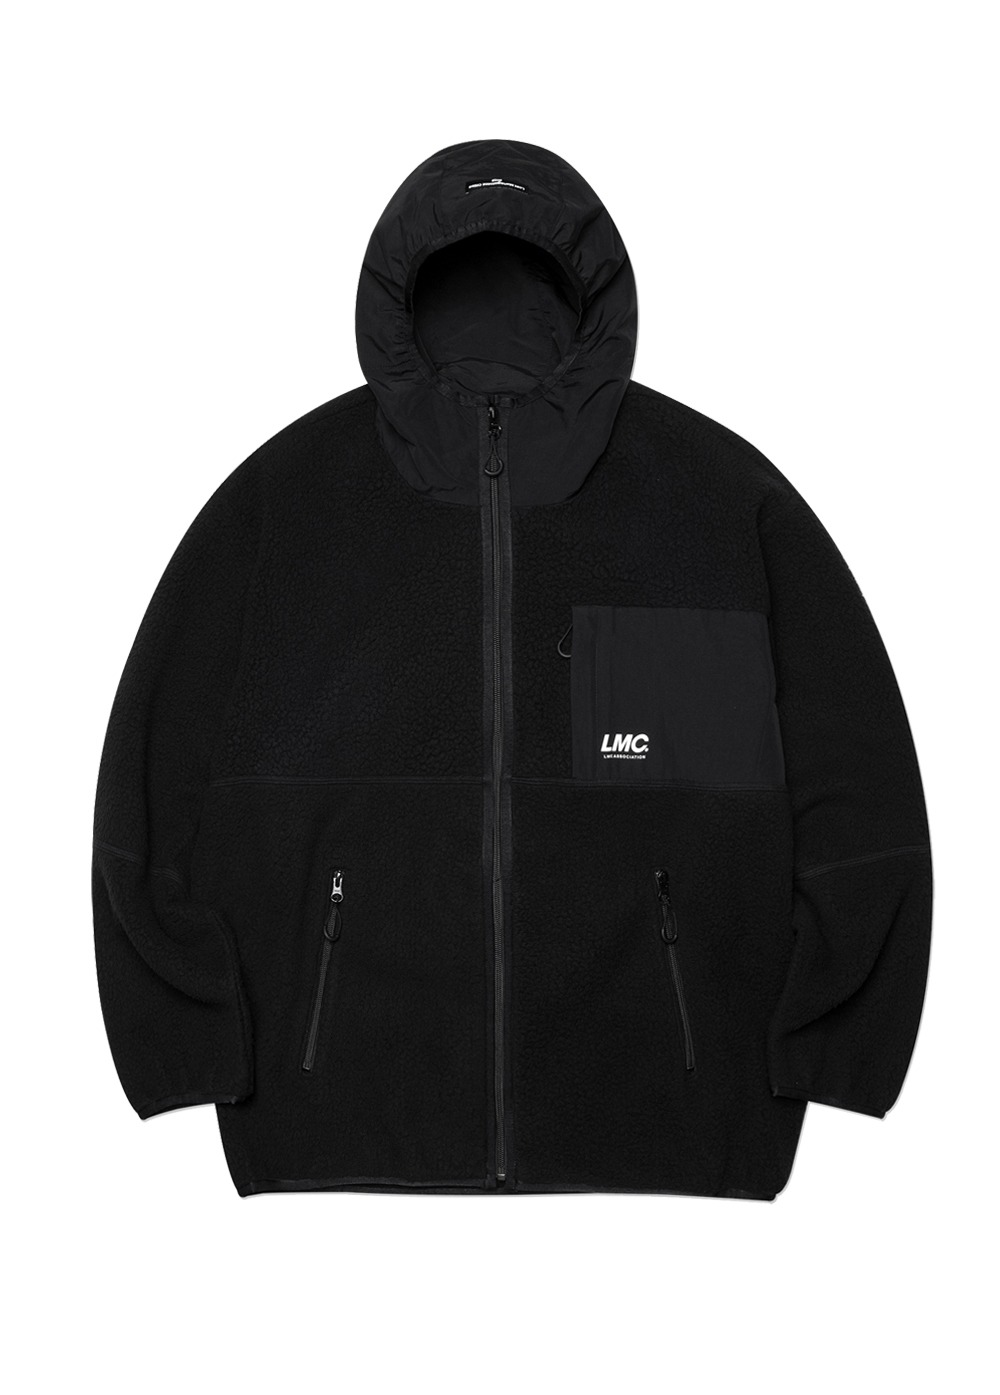 LMC HOODED FLEECE JACKET black